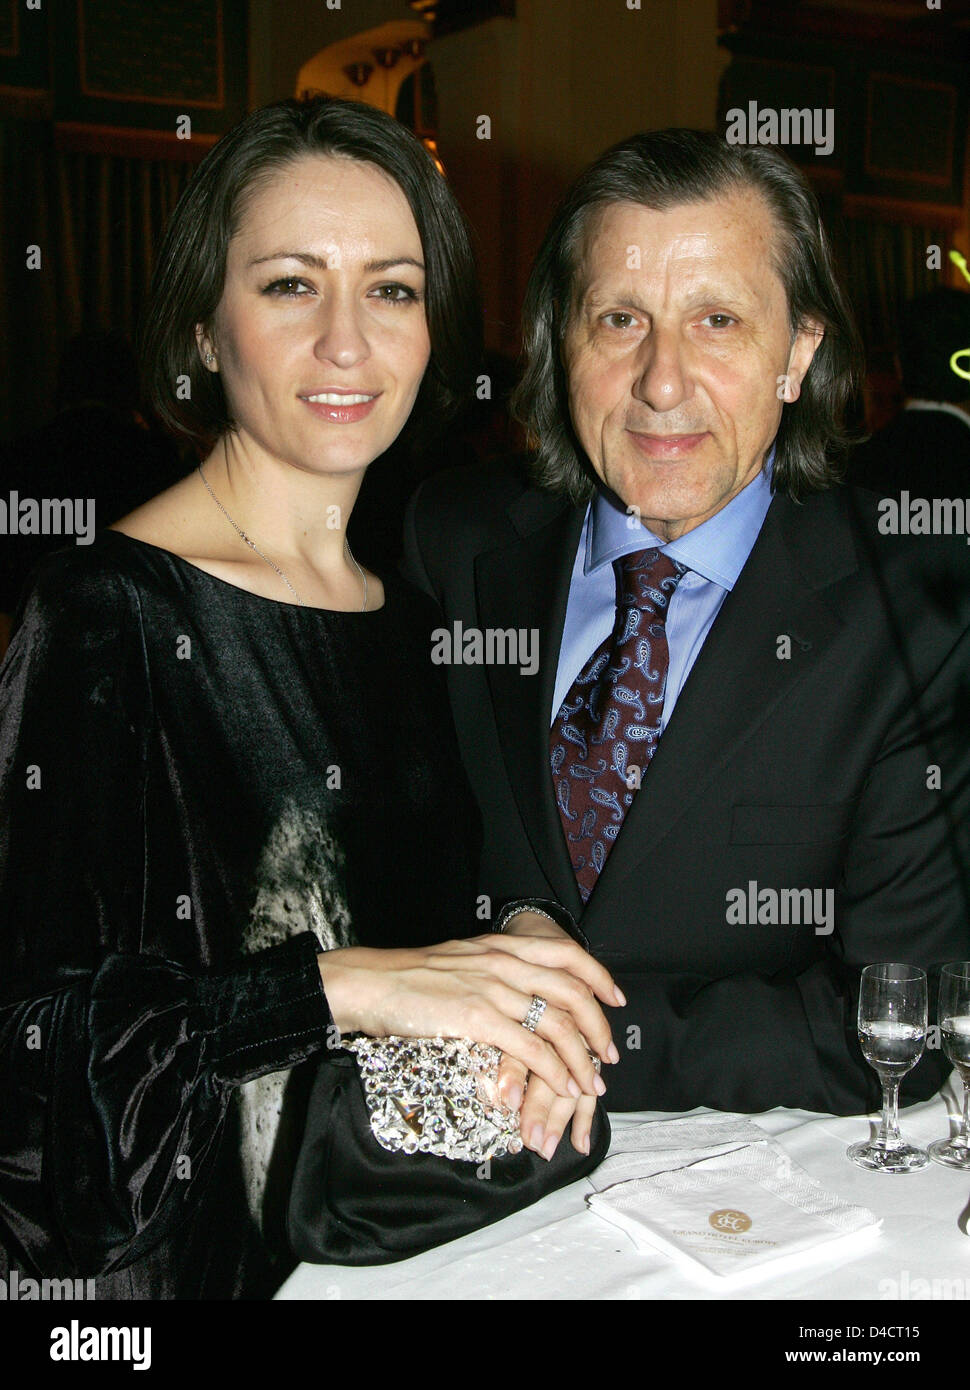 Former Romanian tennis player Ilie Nastase is pictured with his